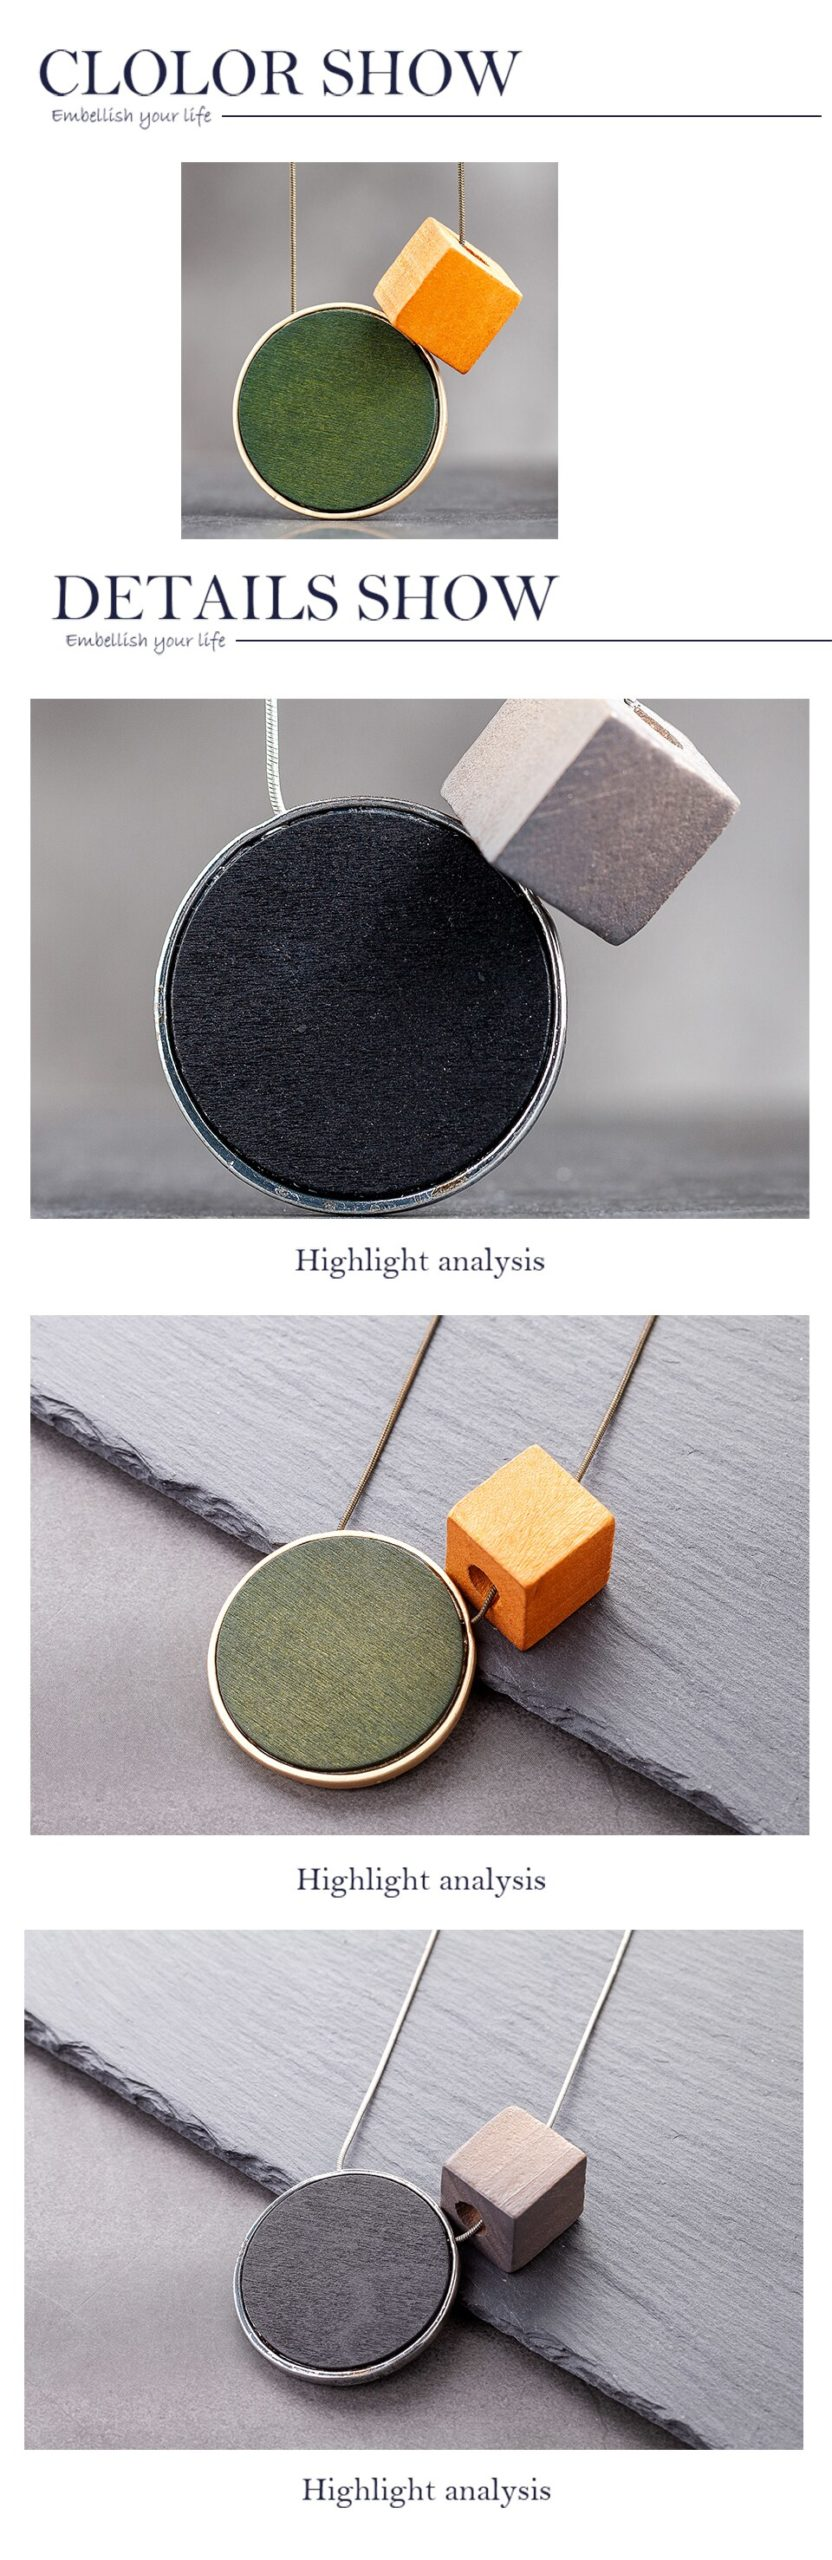 Colored Wooden Vintage Round Accessories Female Pendant Women Jewelry On The Neck Decoration Statement Suspension Necklaces 2020